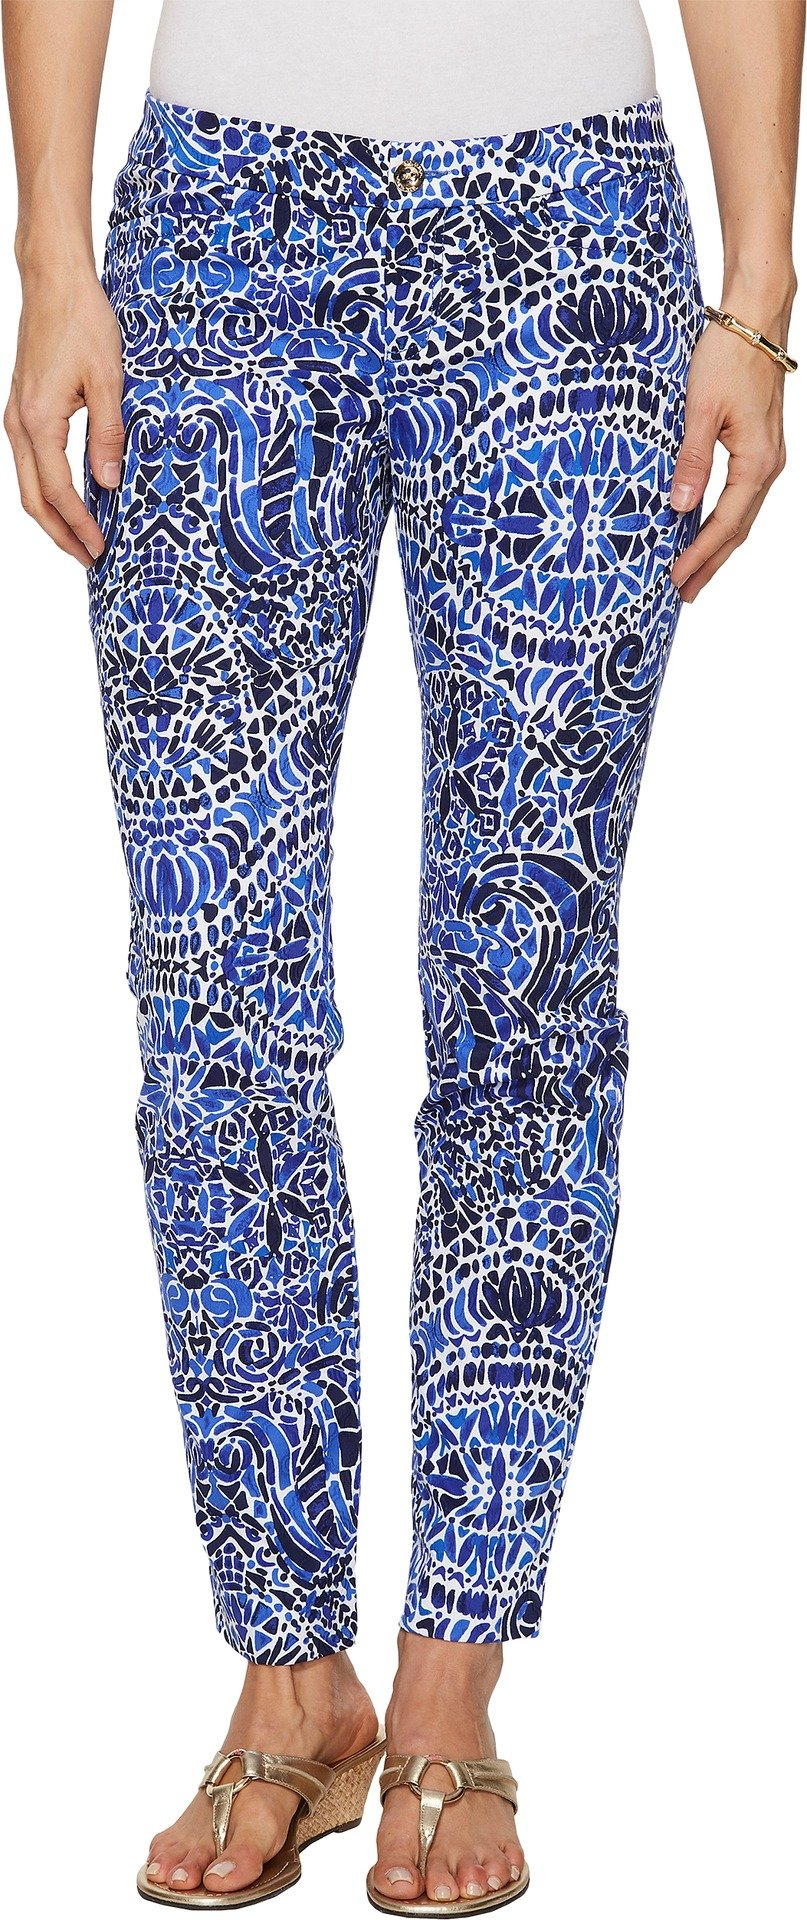 Lilly Pulitzer Women's Kelly Skinny Ankle Pants Bright Navy TAVERNA Tile All Over 8